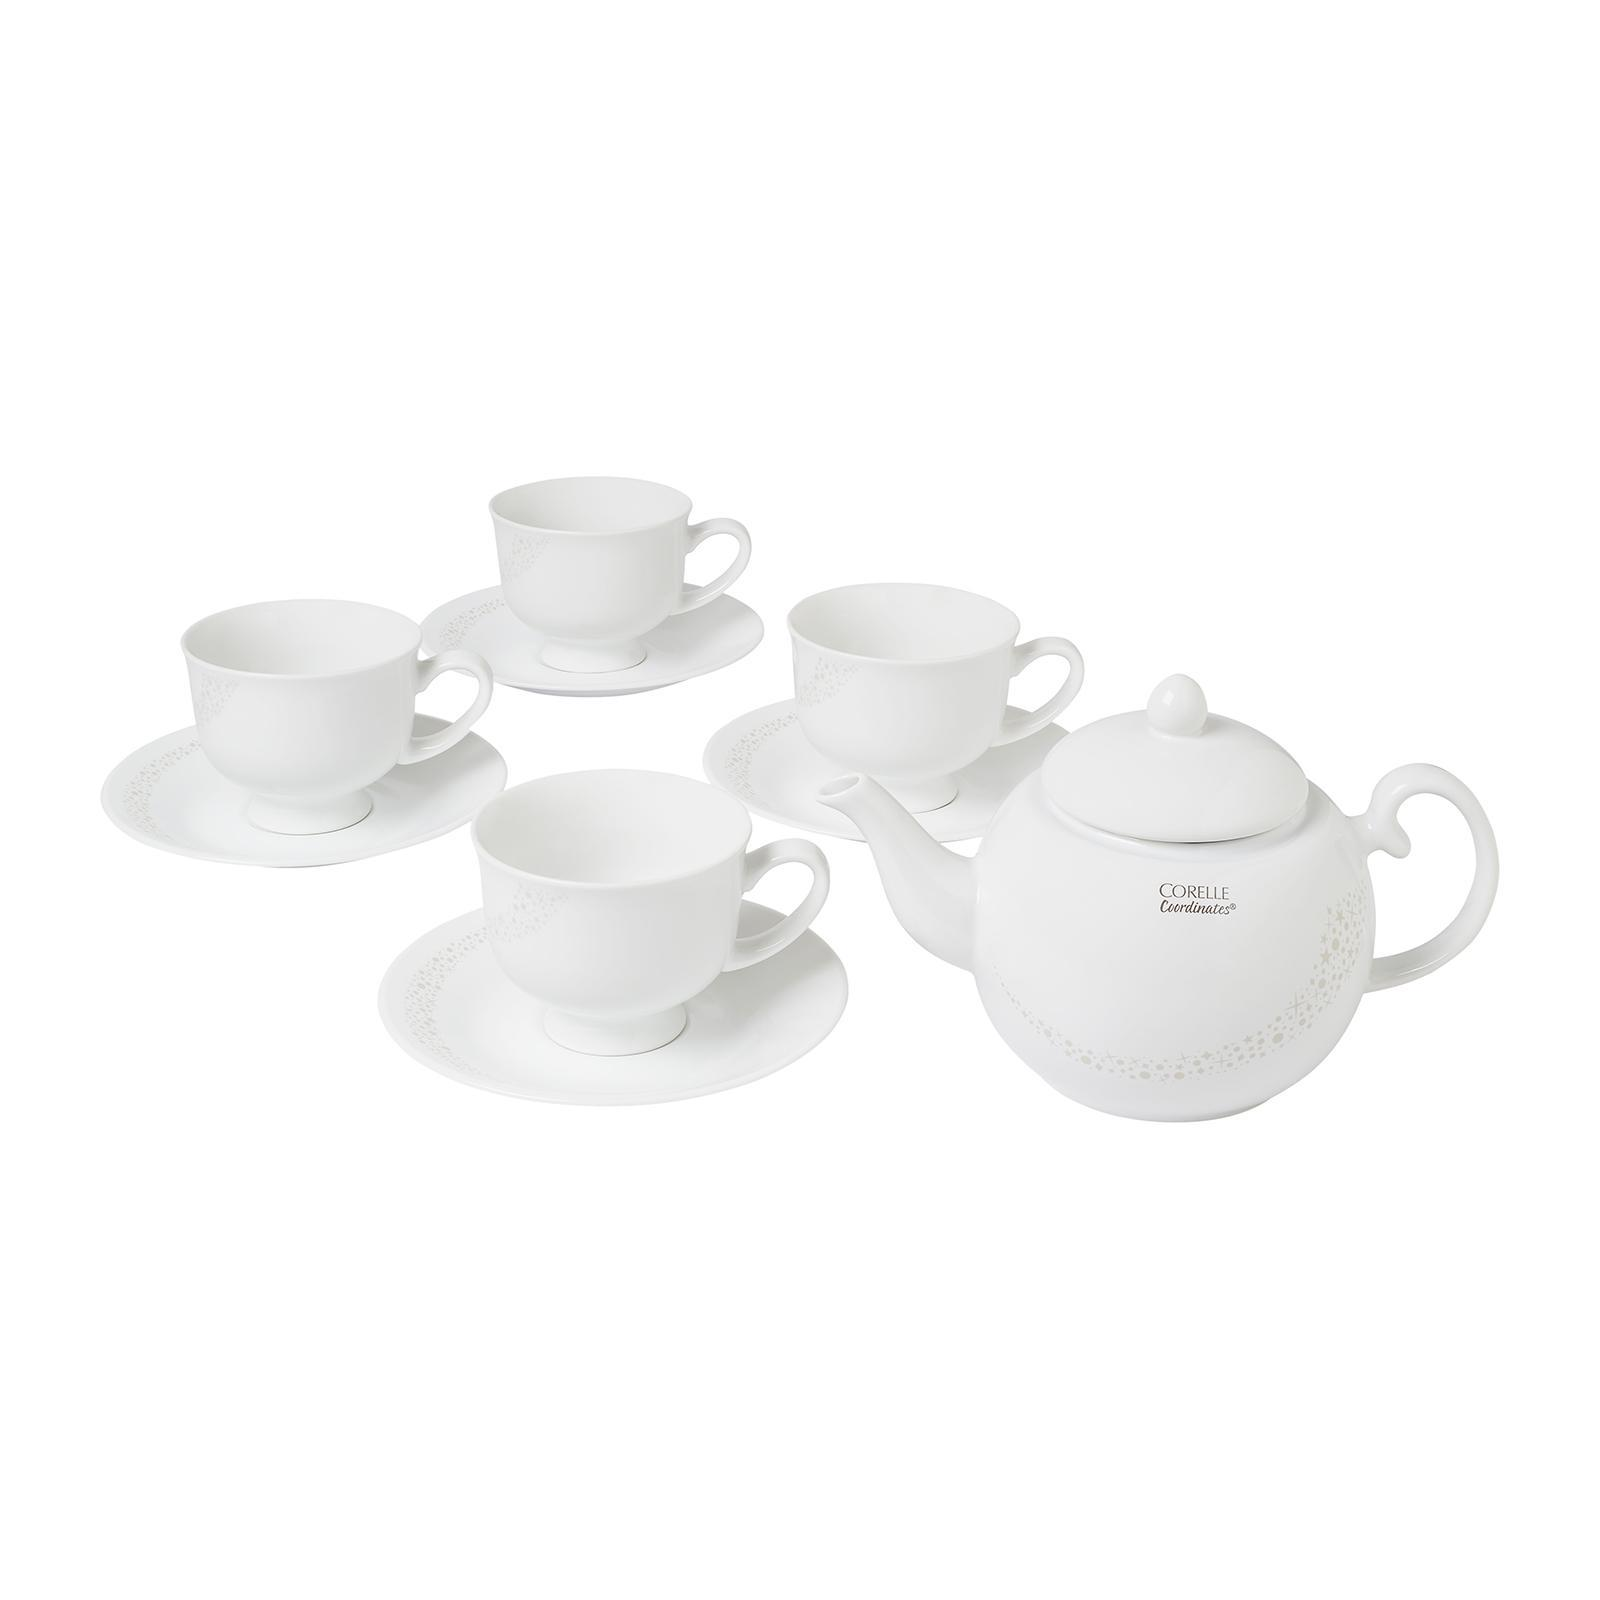 Corelle Coordinates 8 PCS Cup And Saucer Set with FREE 850 ML Teapot (Design: Moonlight)